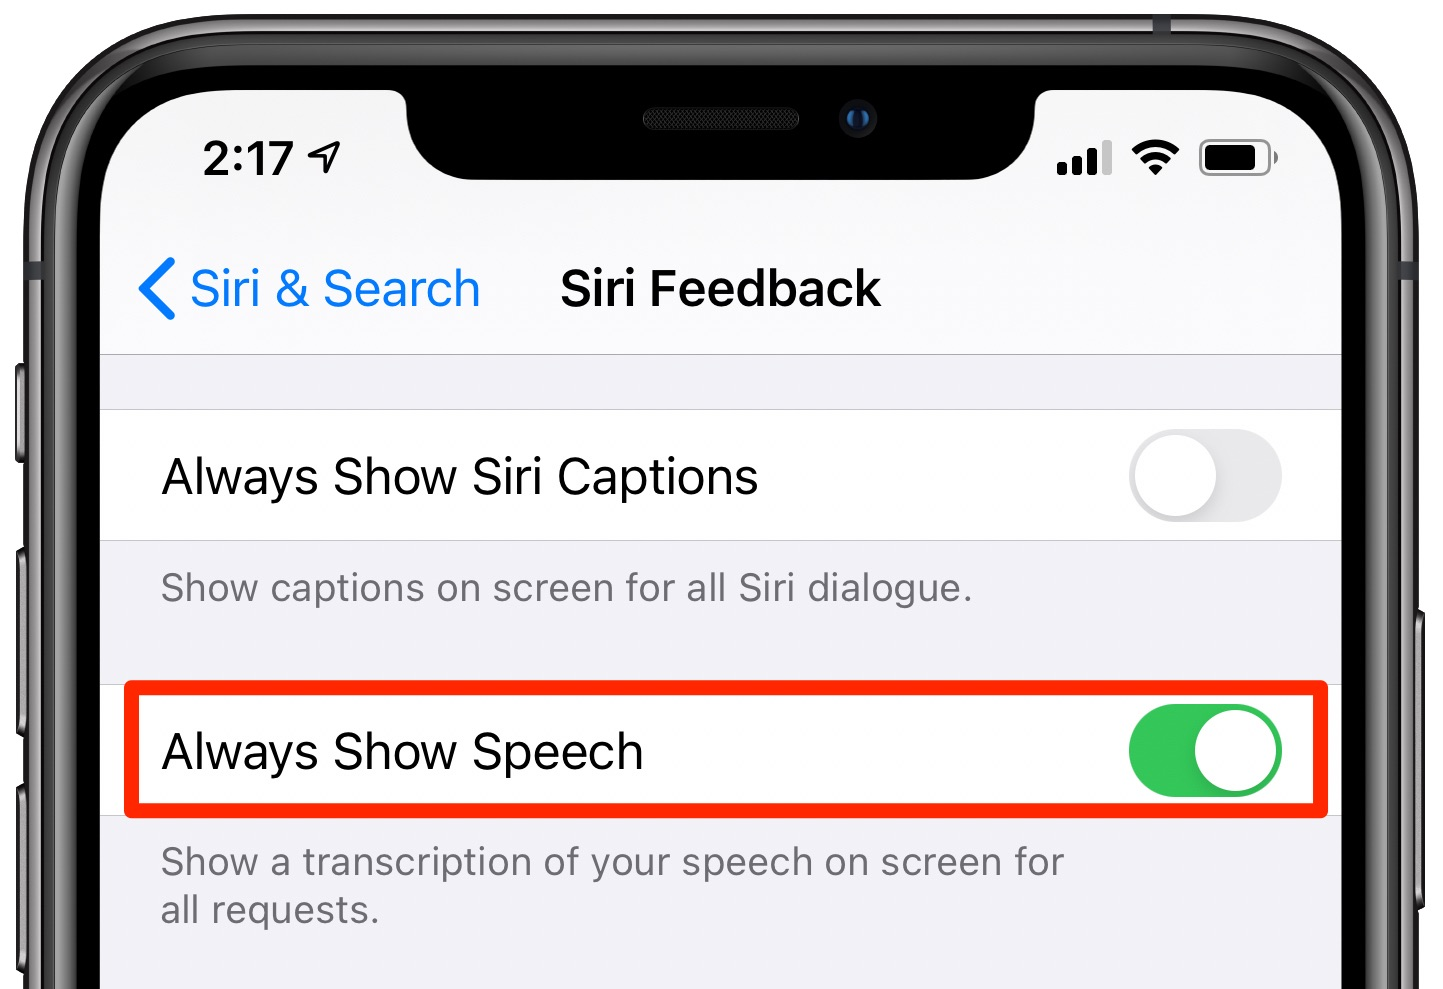 Siri transcriptions - the Always Show Speech option enabled in the Siri settings